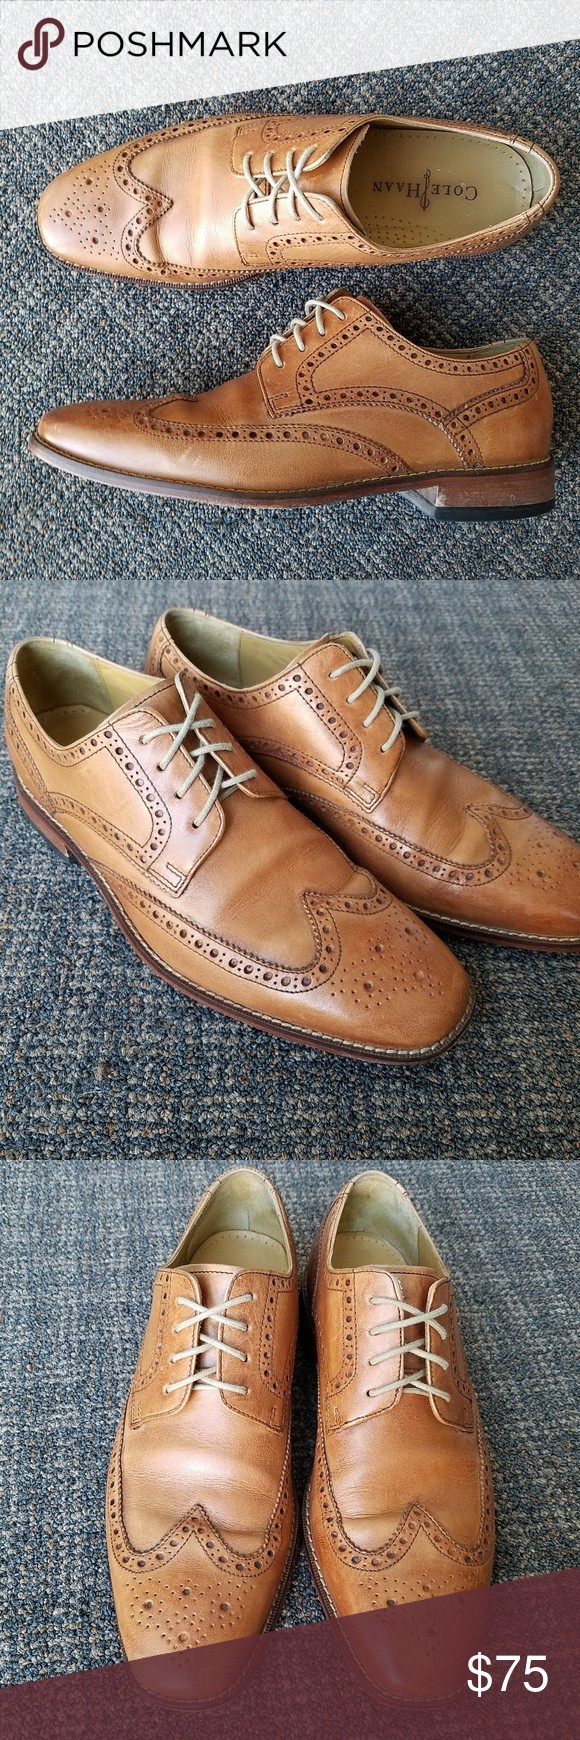 Cole Haan Wing Tip Oxford Shoes Air